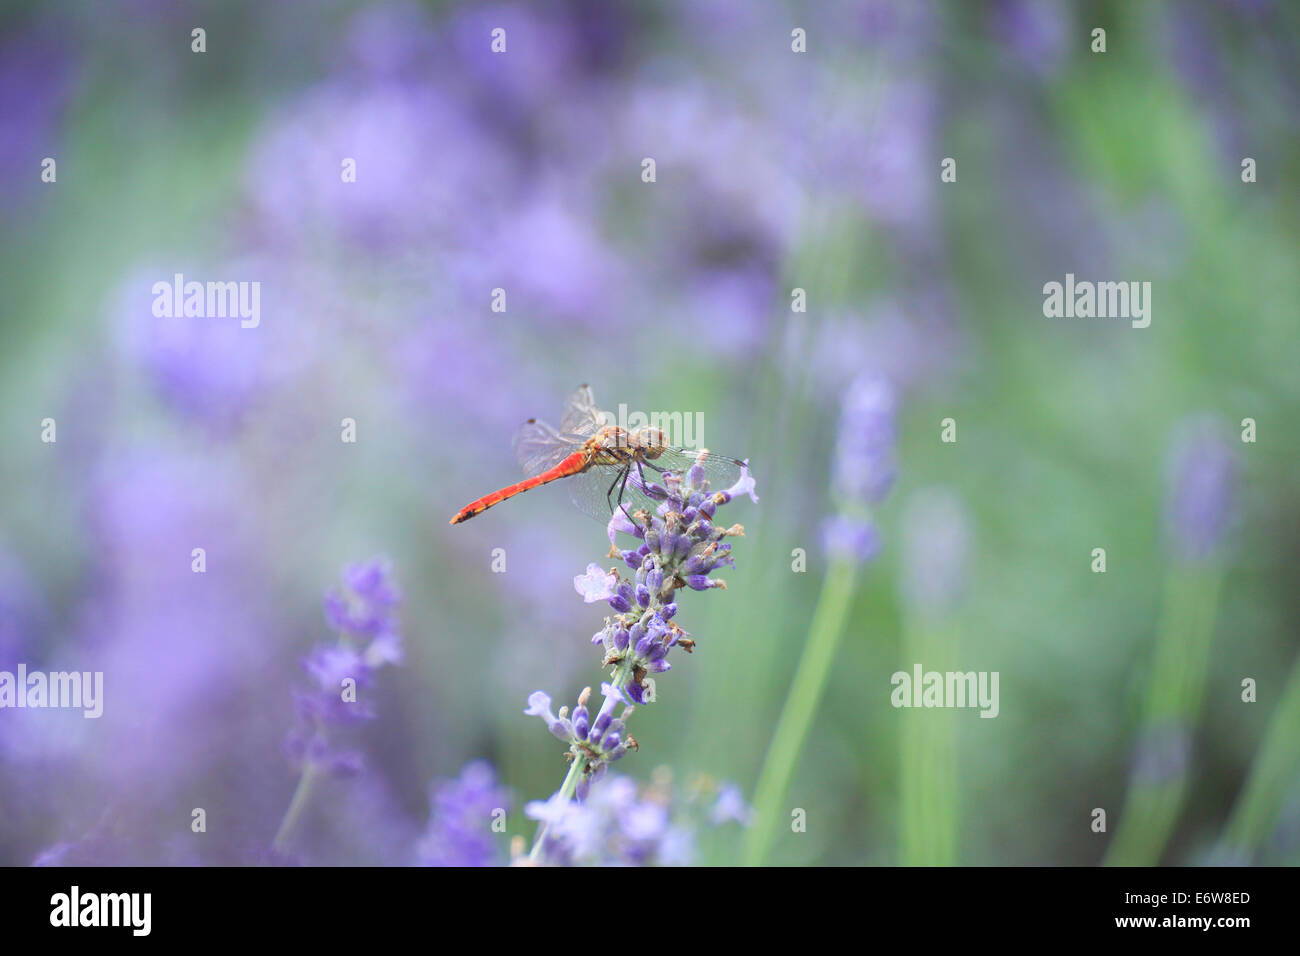 Beautiful lavender flowers and dragonfly stock photo 73084885 alamy beautiful lavender flowers and dragonfly izmirmasajfo